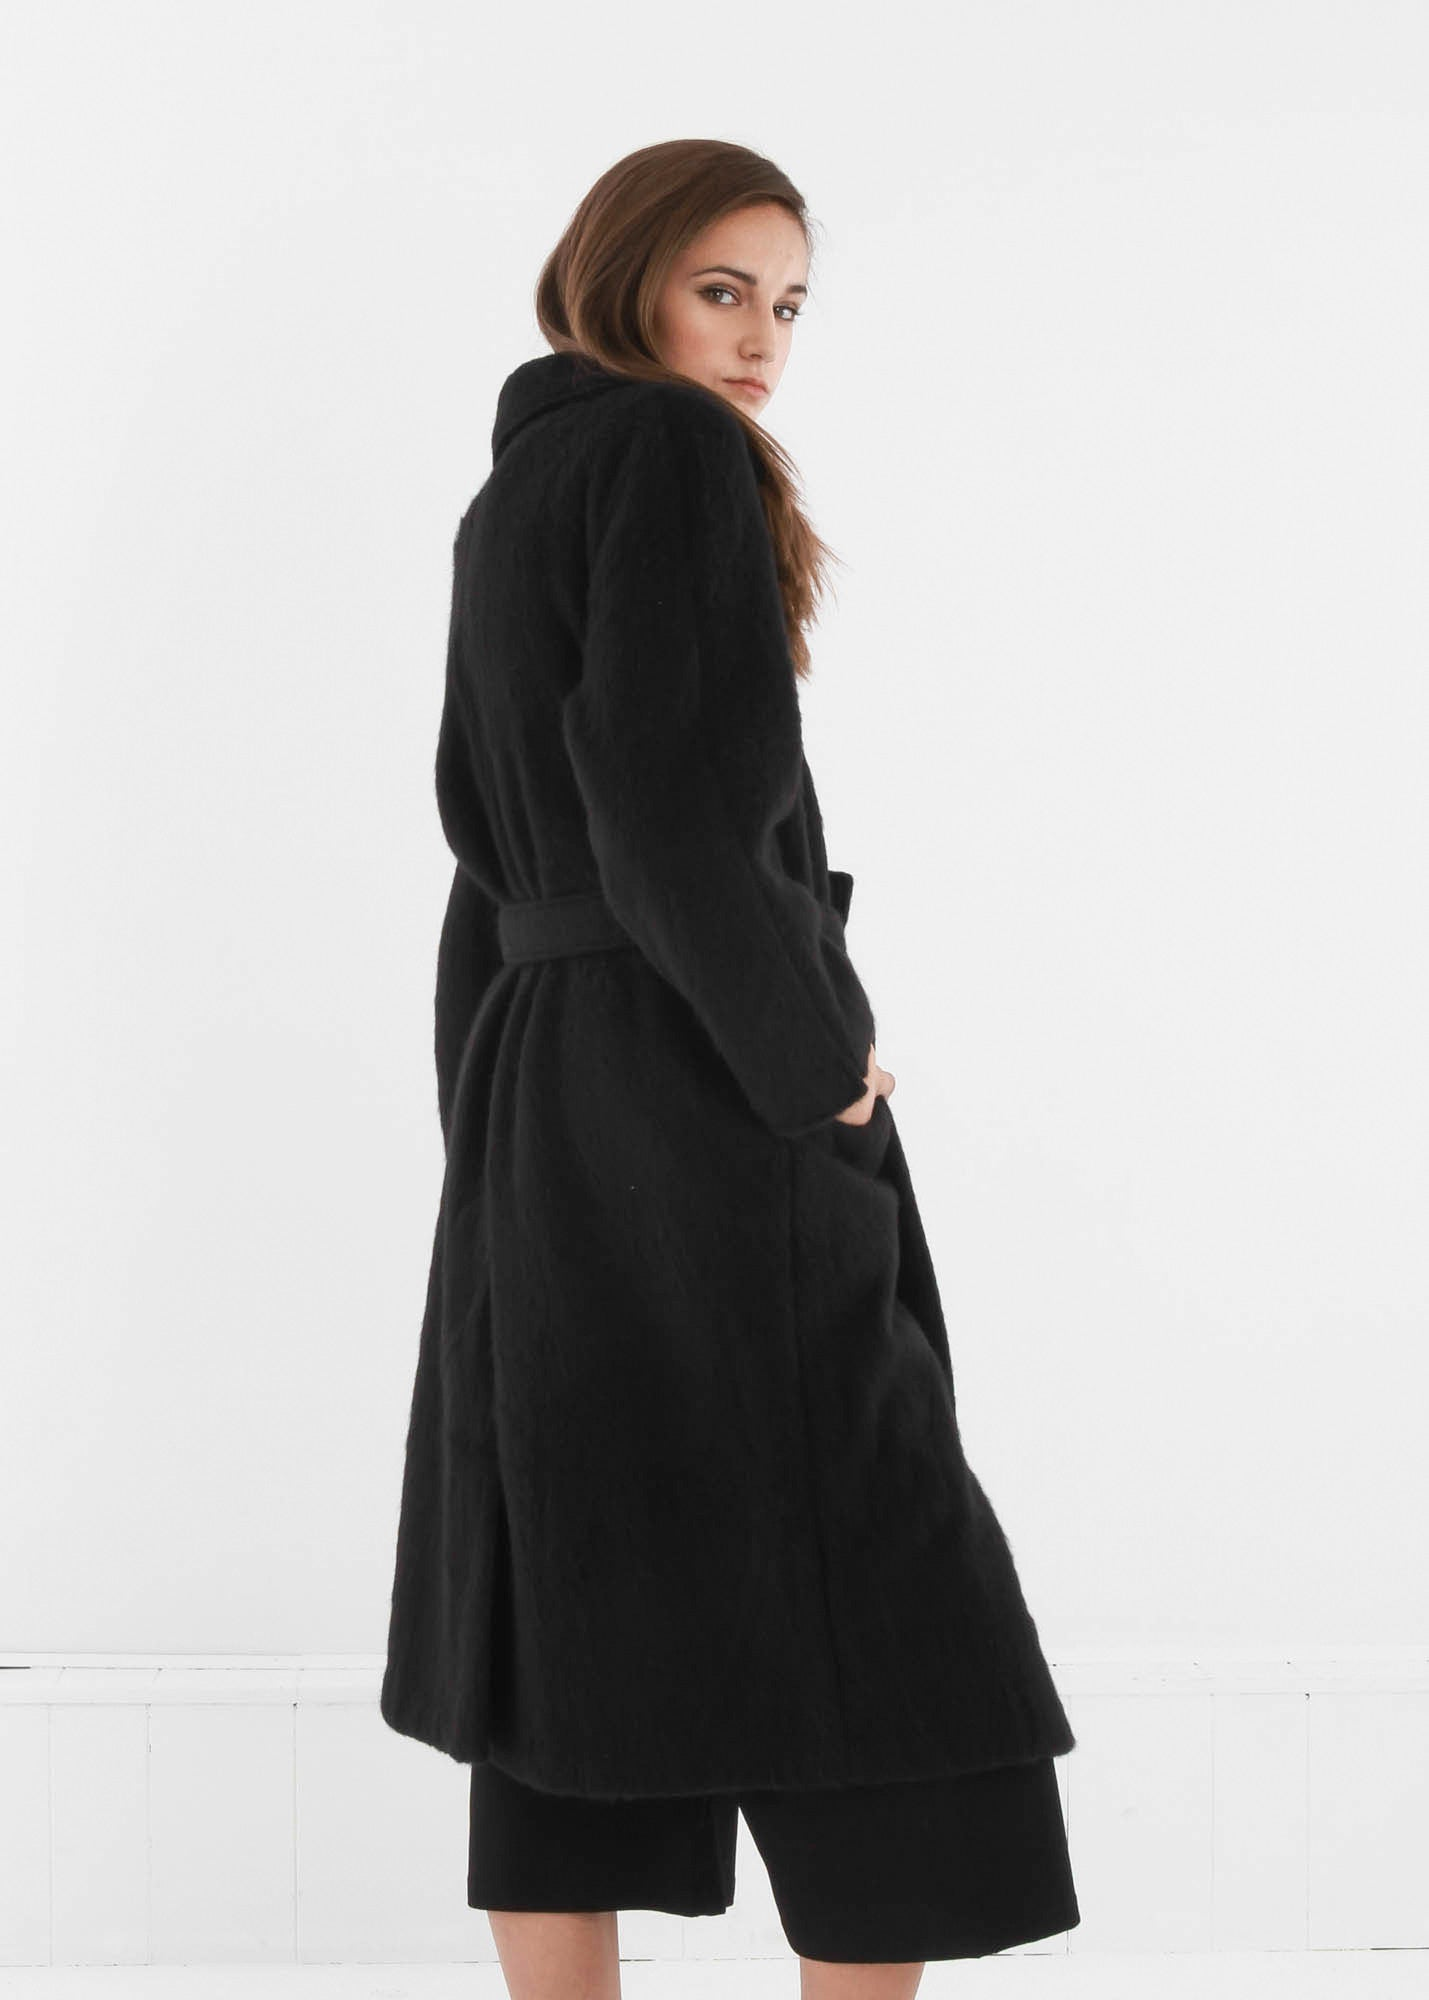 Base Range Black Pyrénées Coat - New Classics Studios  - 2